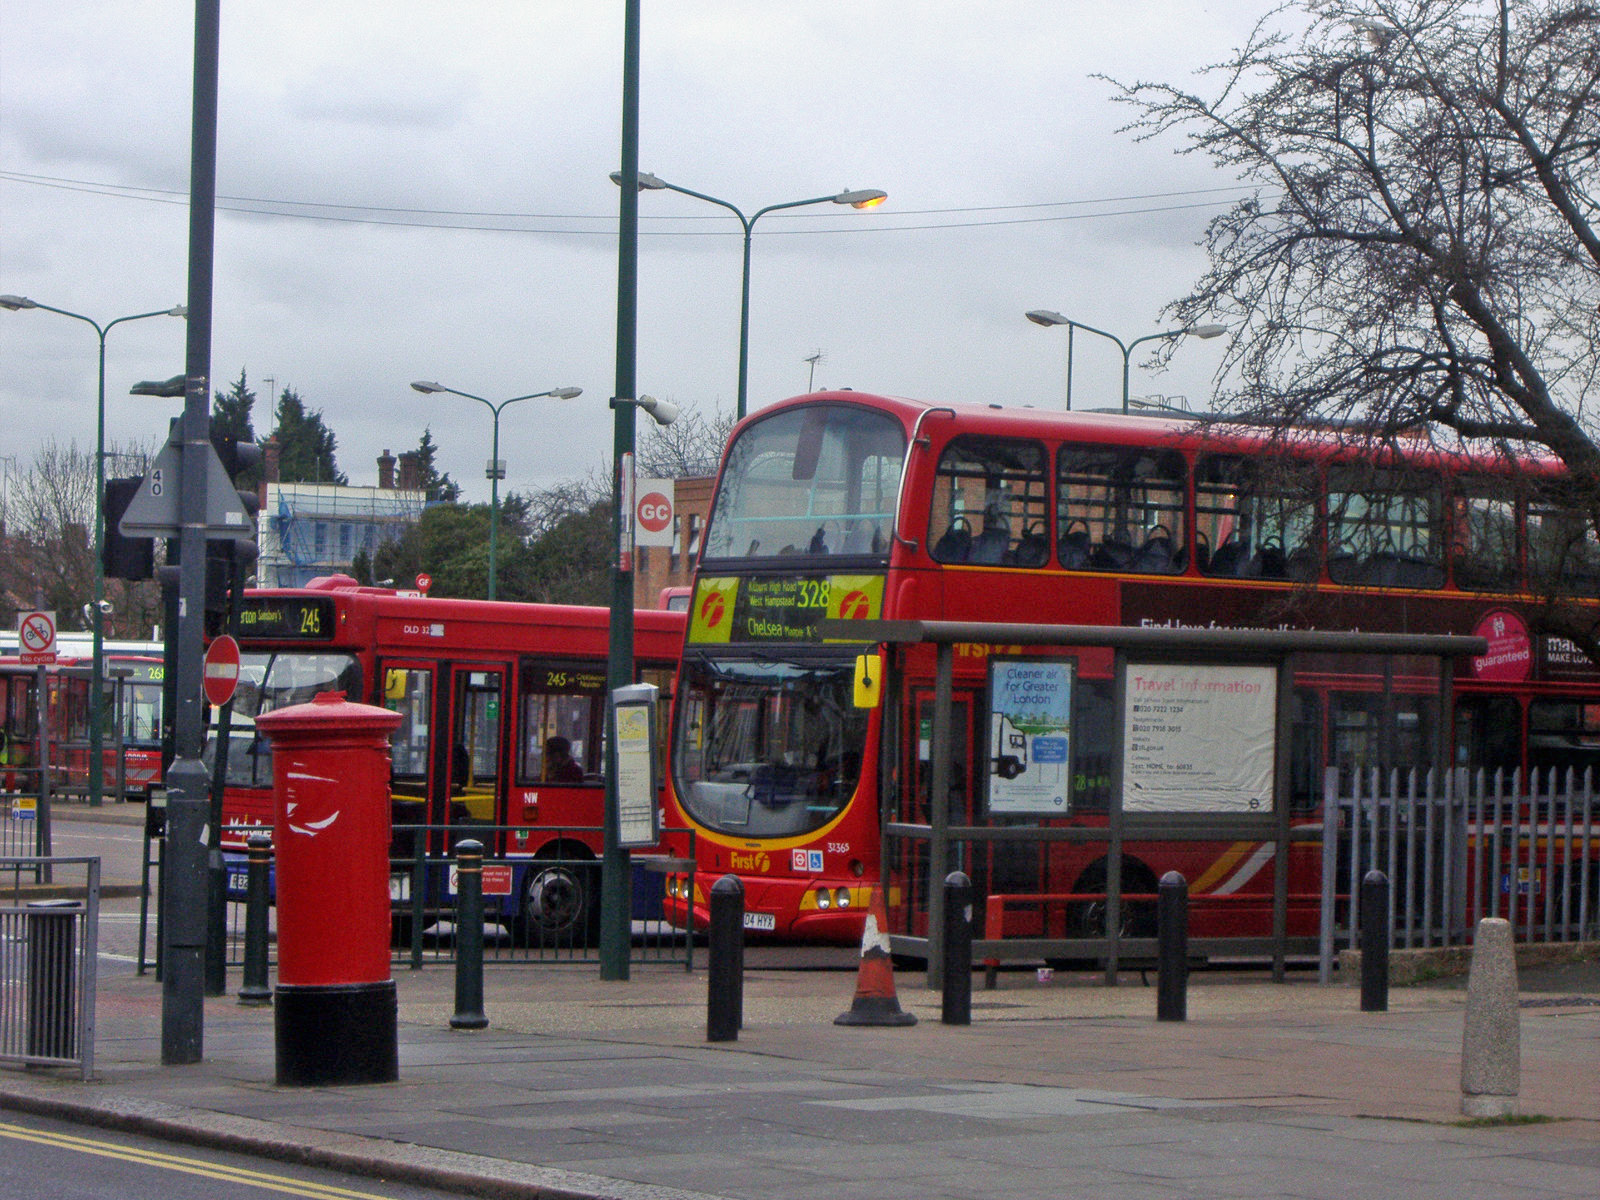 file:london buses route 328 and 245 golders green - wikimedia